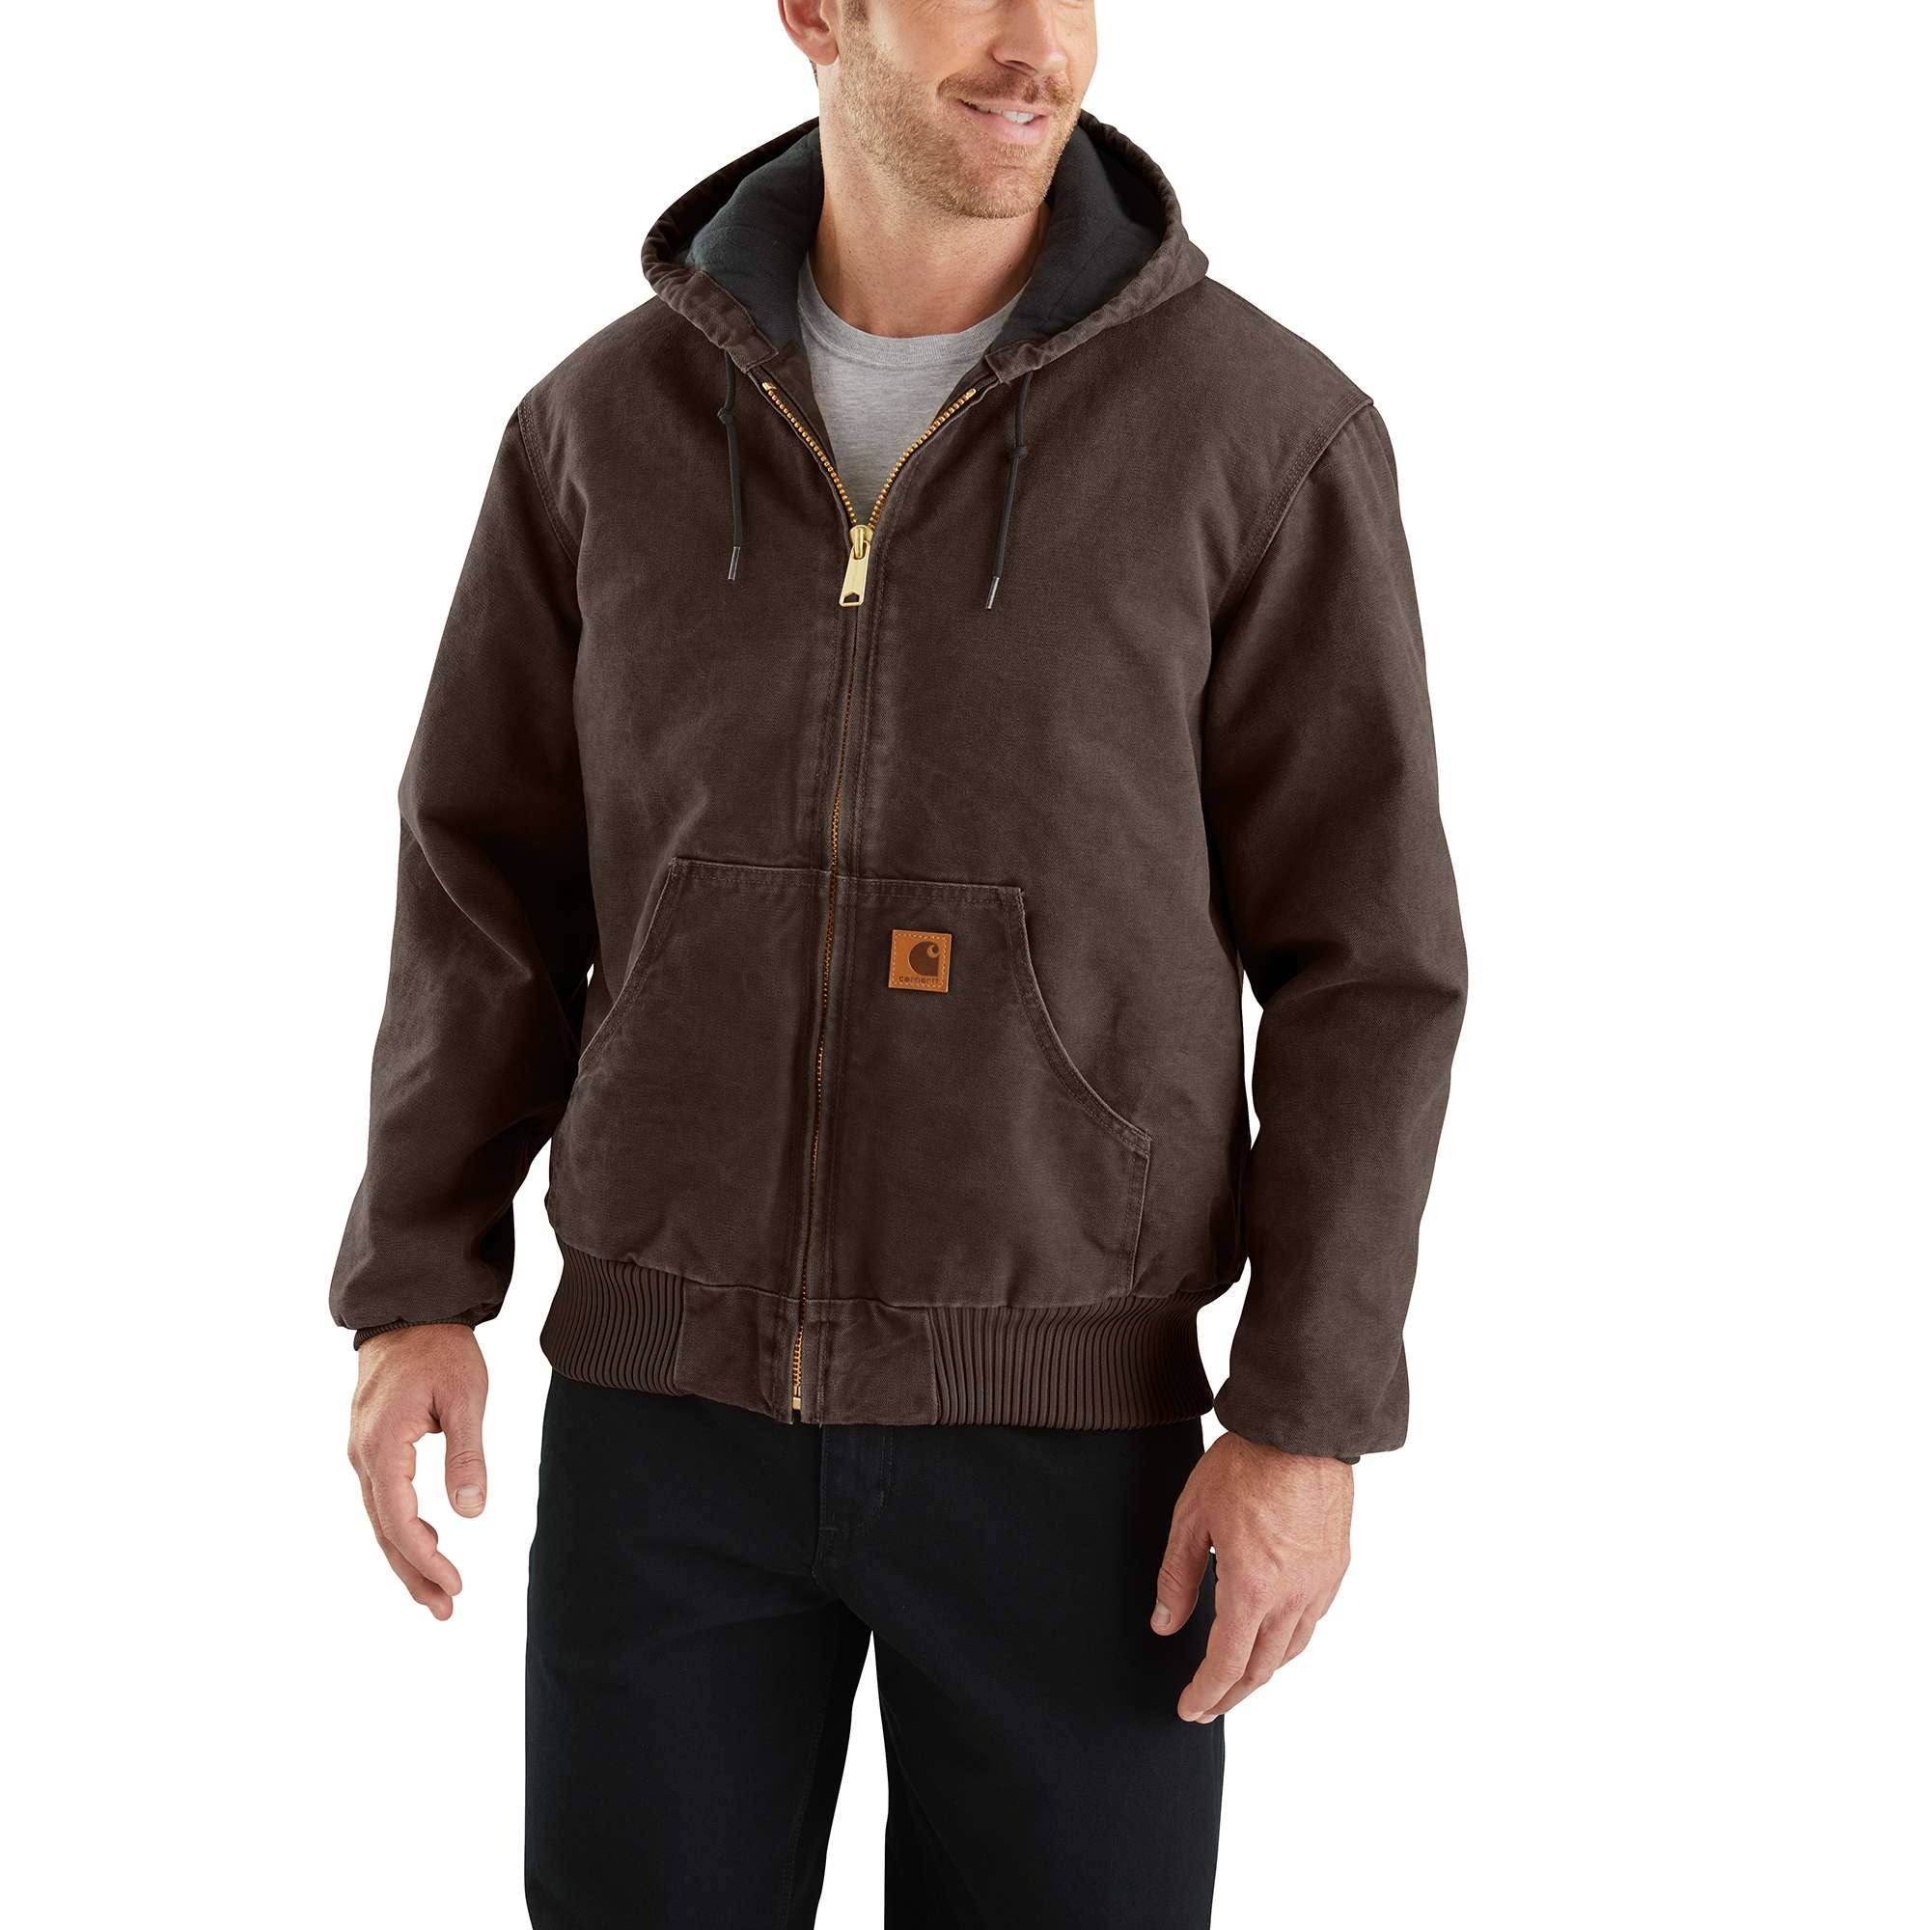 Carhartt Mens Quilted Flannel Lined Sandstone Active Jacket - Dark Brown, X-Large